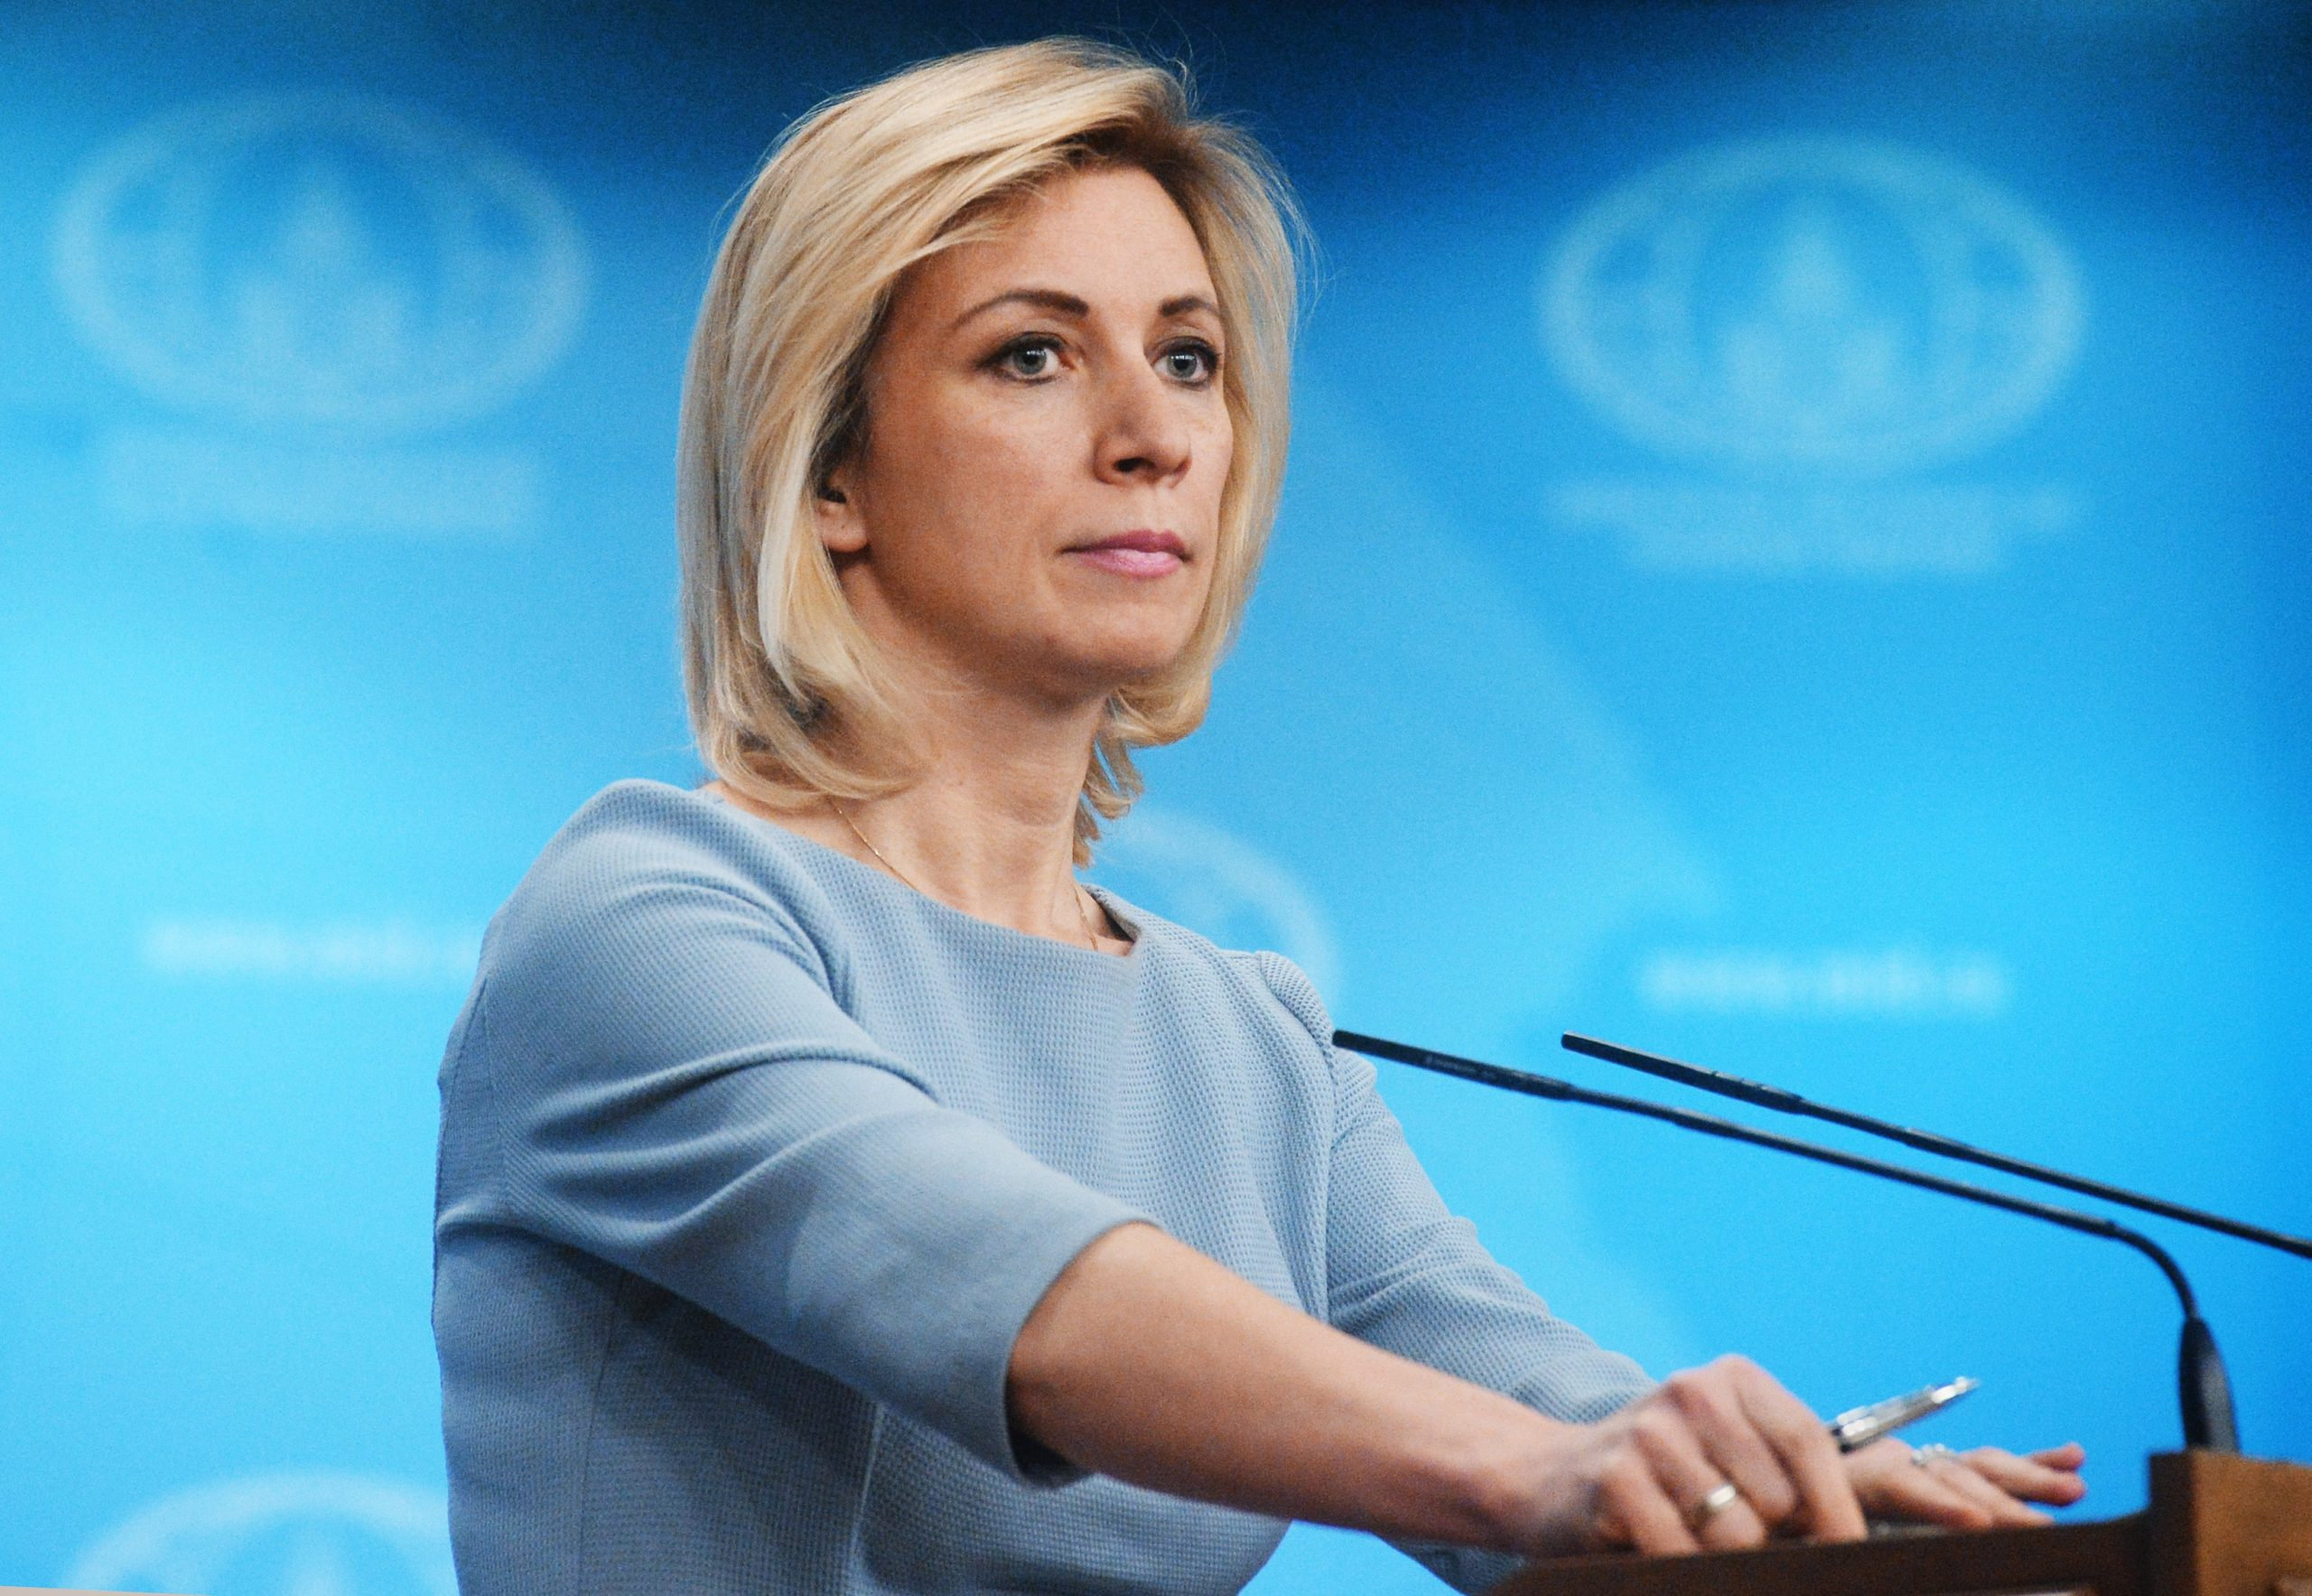 Russia wants the American side to strictly comply with all provisions of the START Treaty - Russian Foreign Ministry